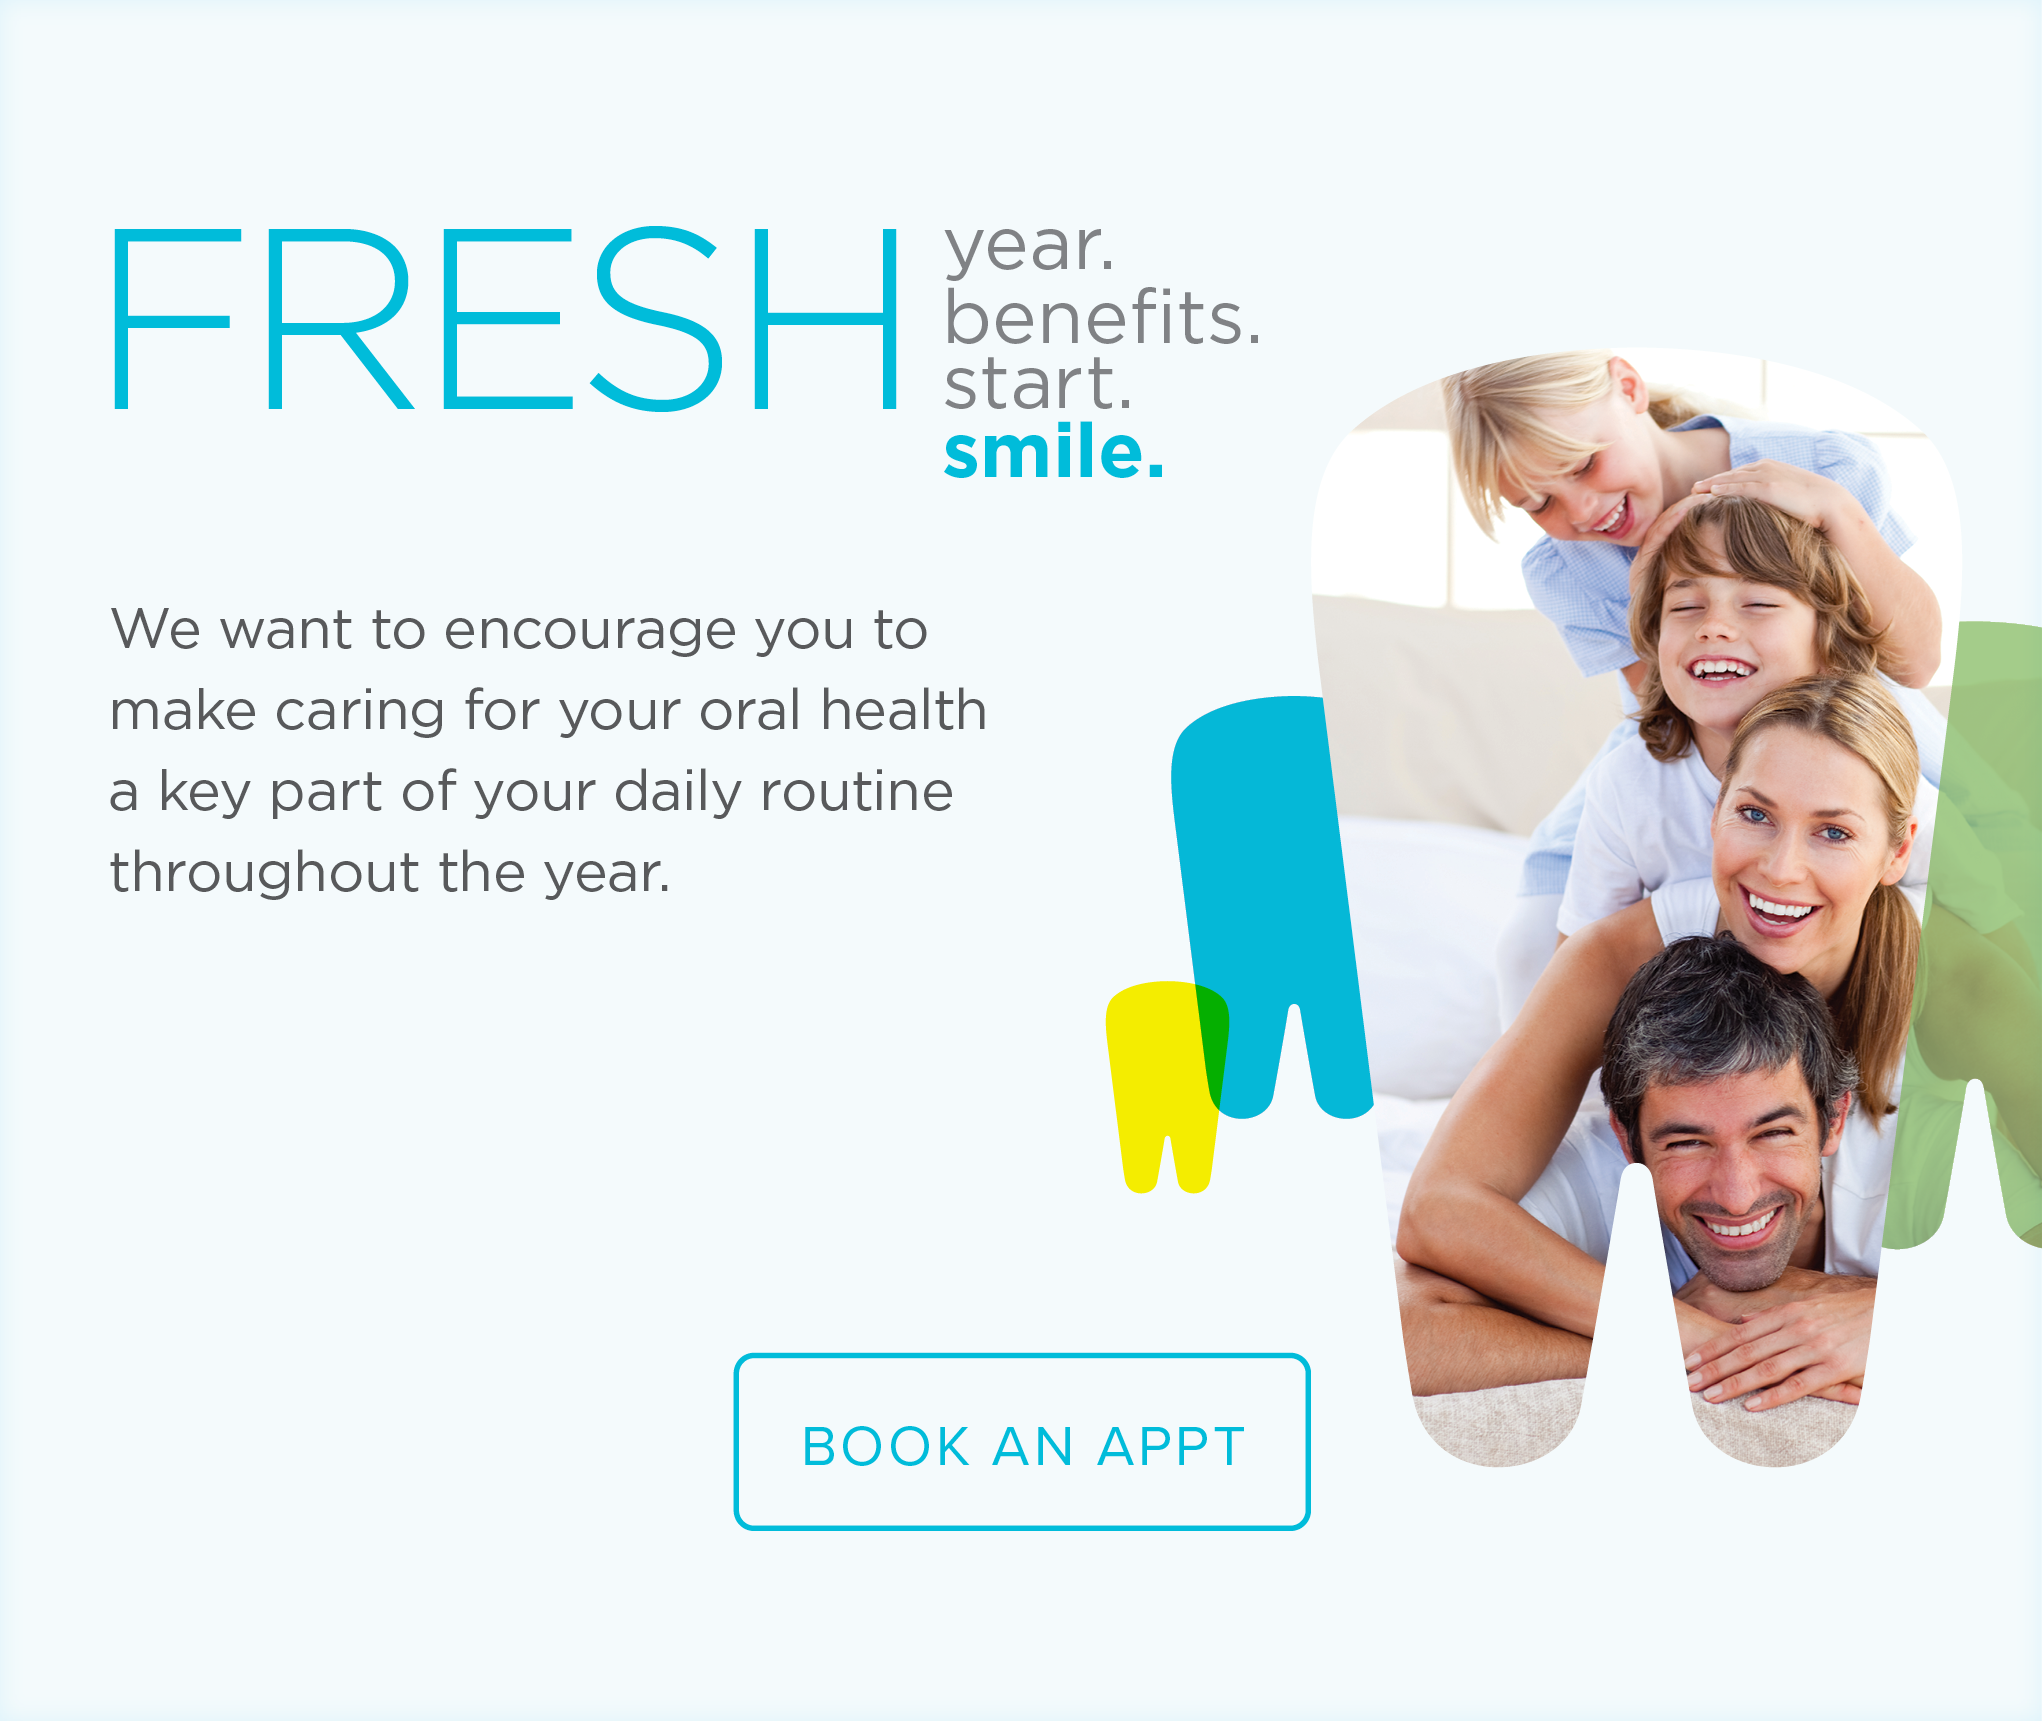 San Clemente Dental Group and Orthodontics - Make the Most of Your Benefits